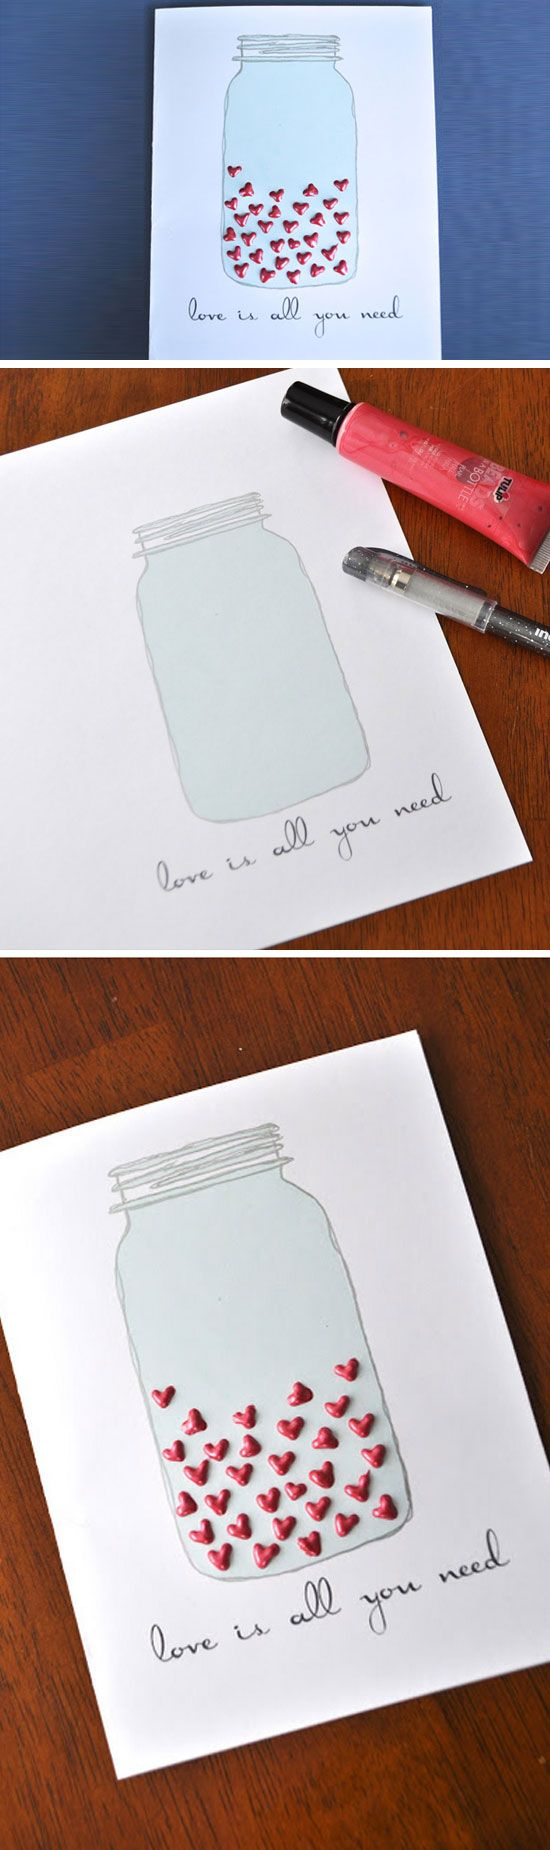 Mason Jar Heart Card | DIY Valentines Cards for Him | DIY Valentines Cards for Boyfriends